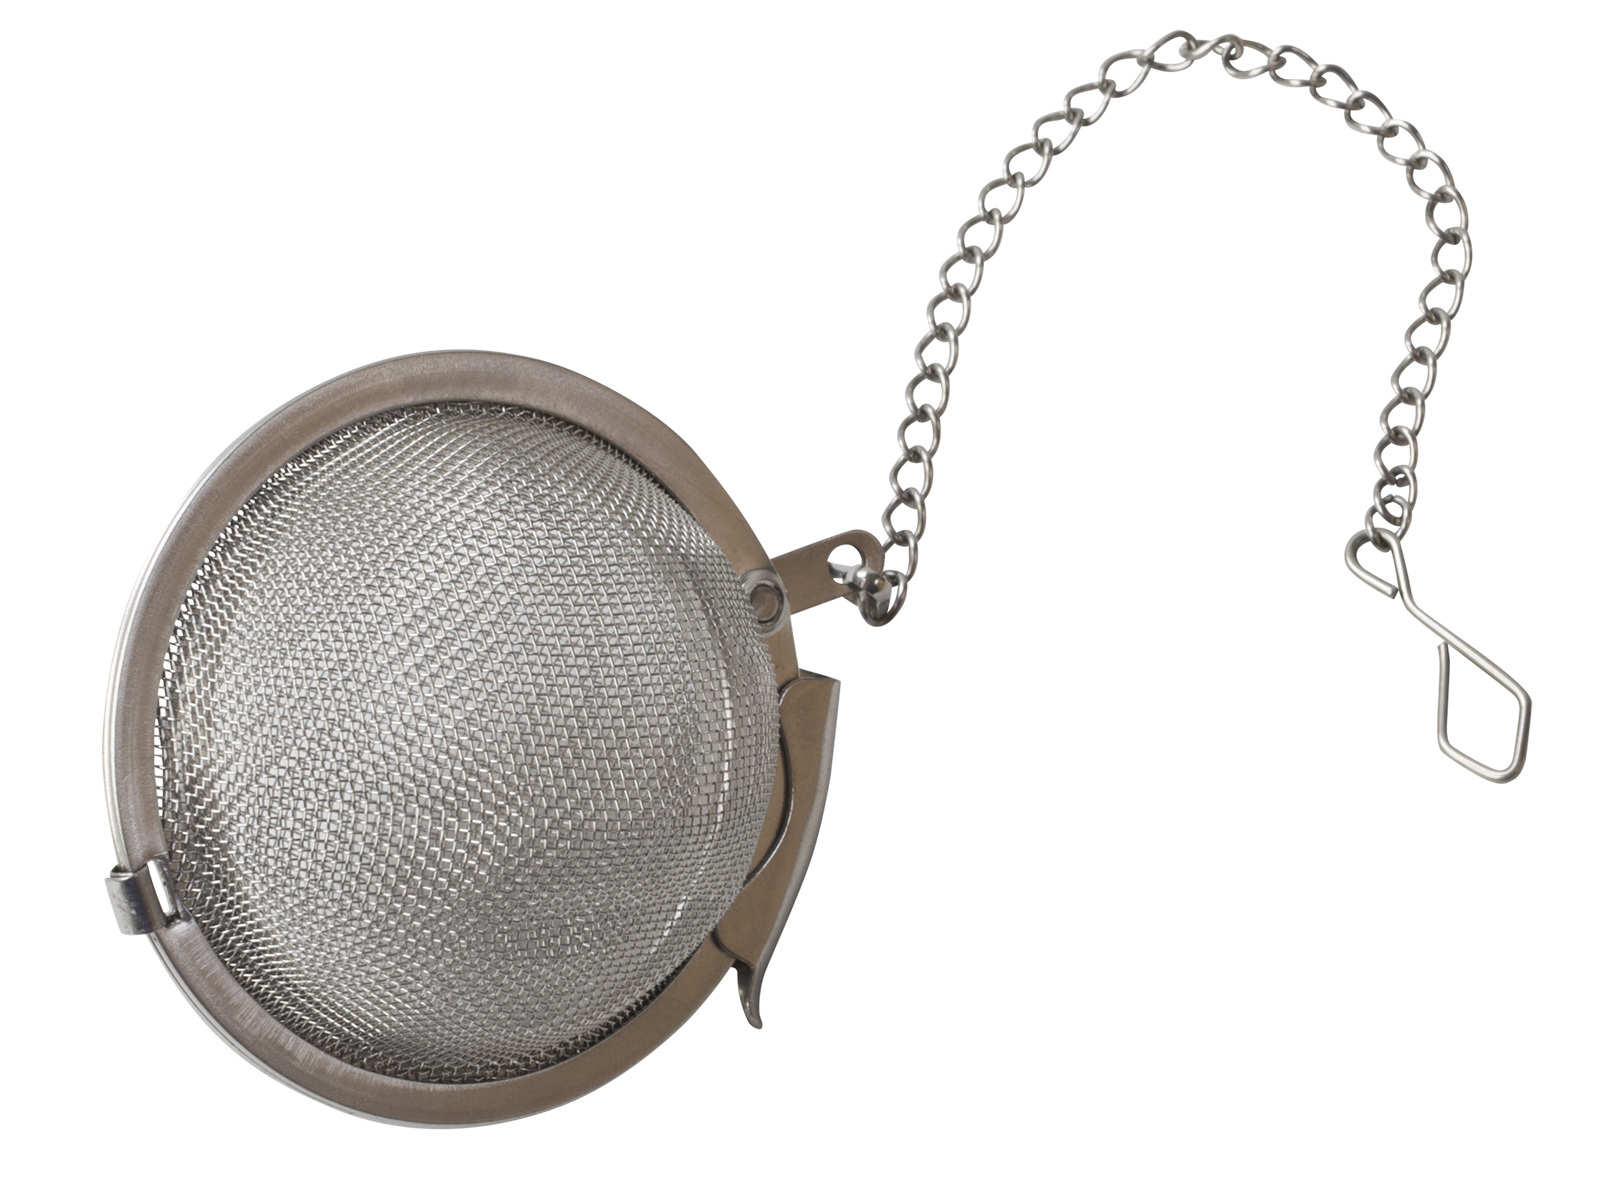 Randwyck 5cm Tea Ball Infuser